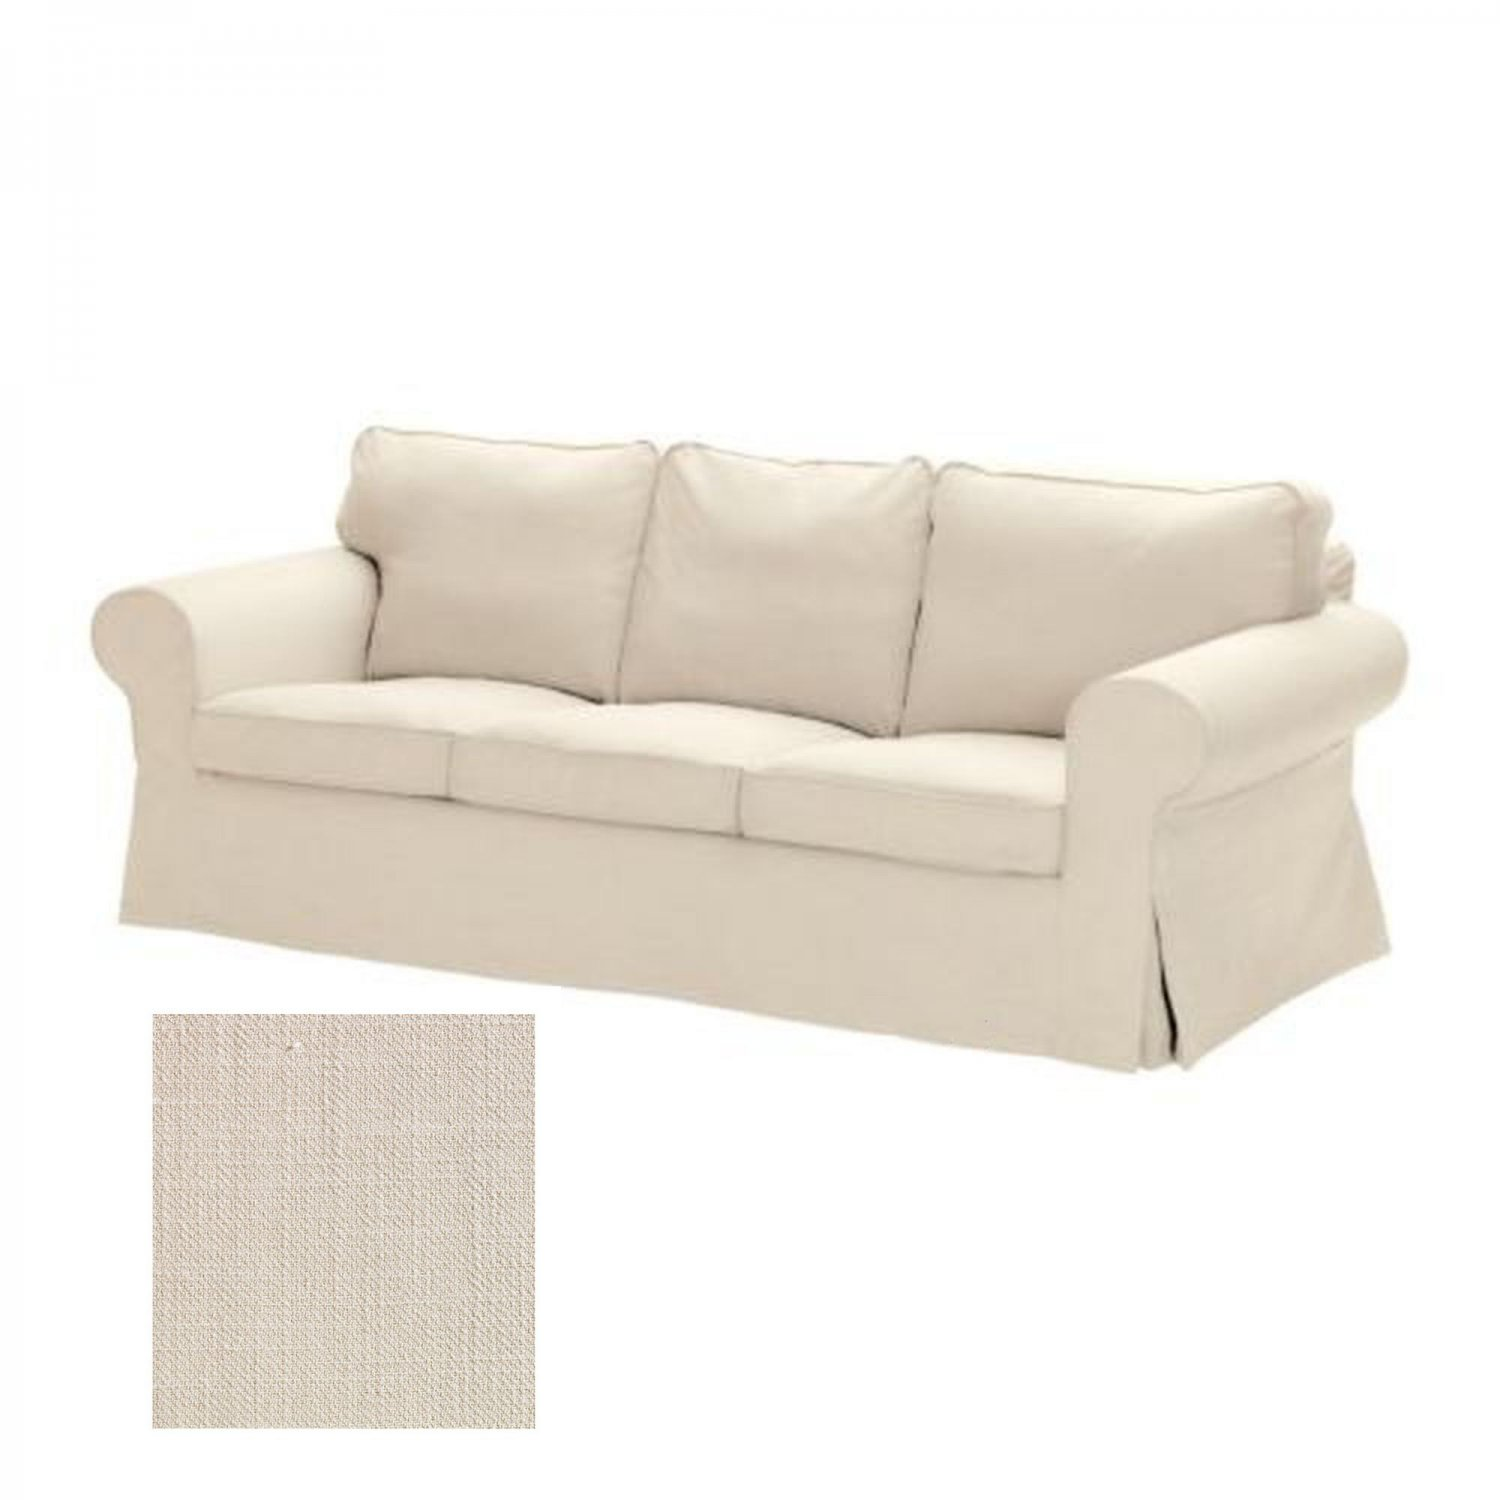 sofa seat covers in kenya antique styles pictures ikea ektorp 3 slipcover cover svanby beige linen